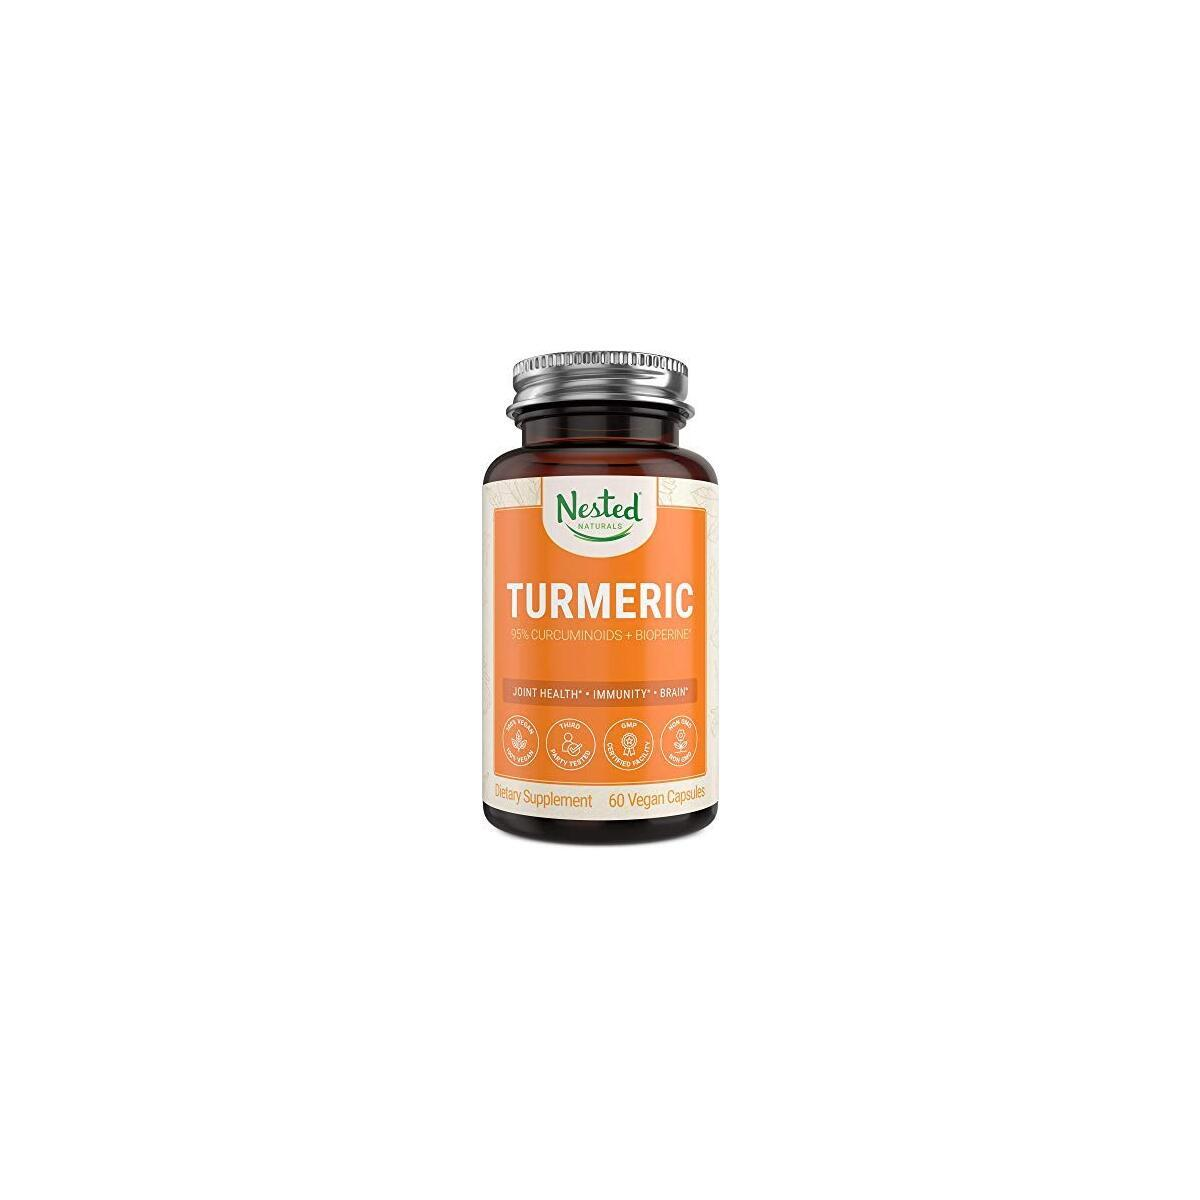 Nested Naturals Turmeric Curcumin with BioPerine (Black Pepper Extract) | Highest Potency 95% Curcuminoids | Vegan Joint Support & Healthy Inflammatory Response Supplement